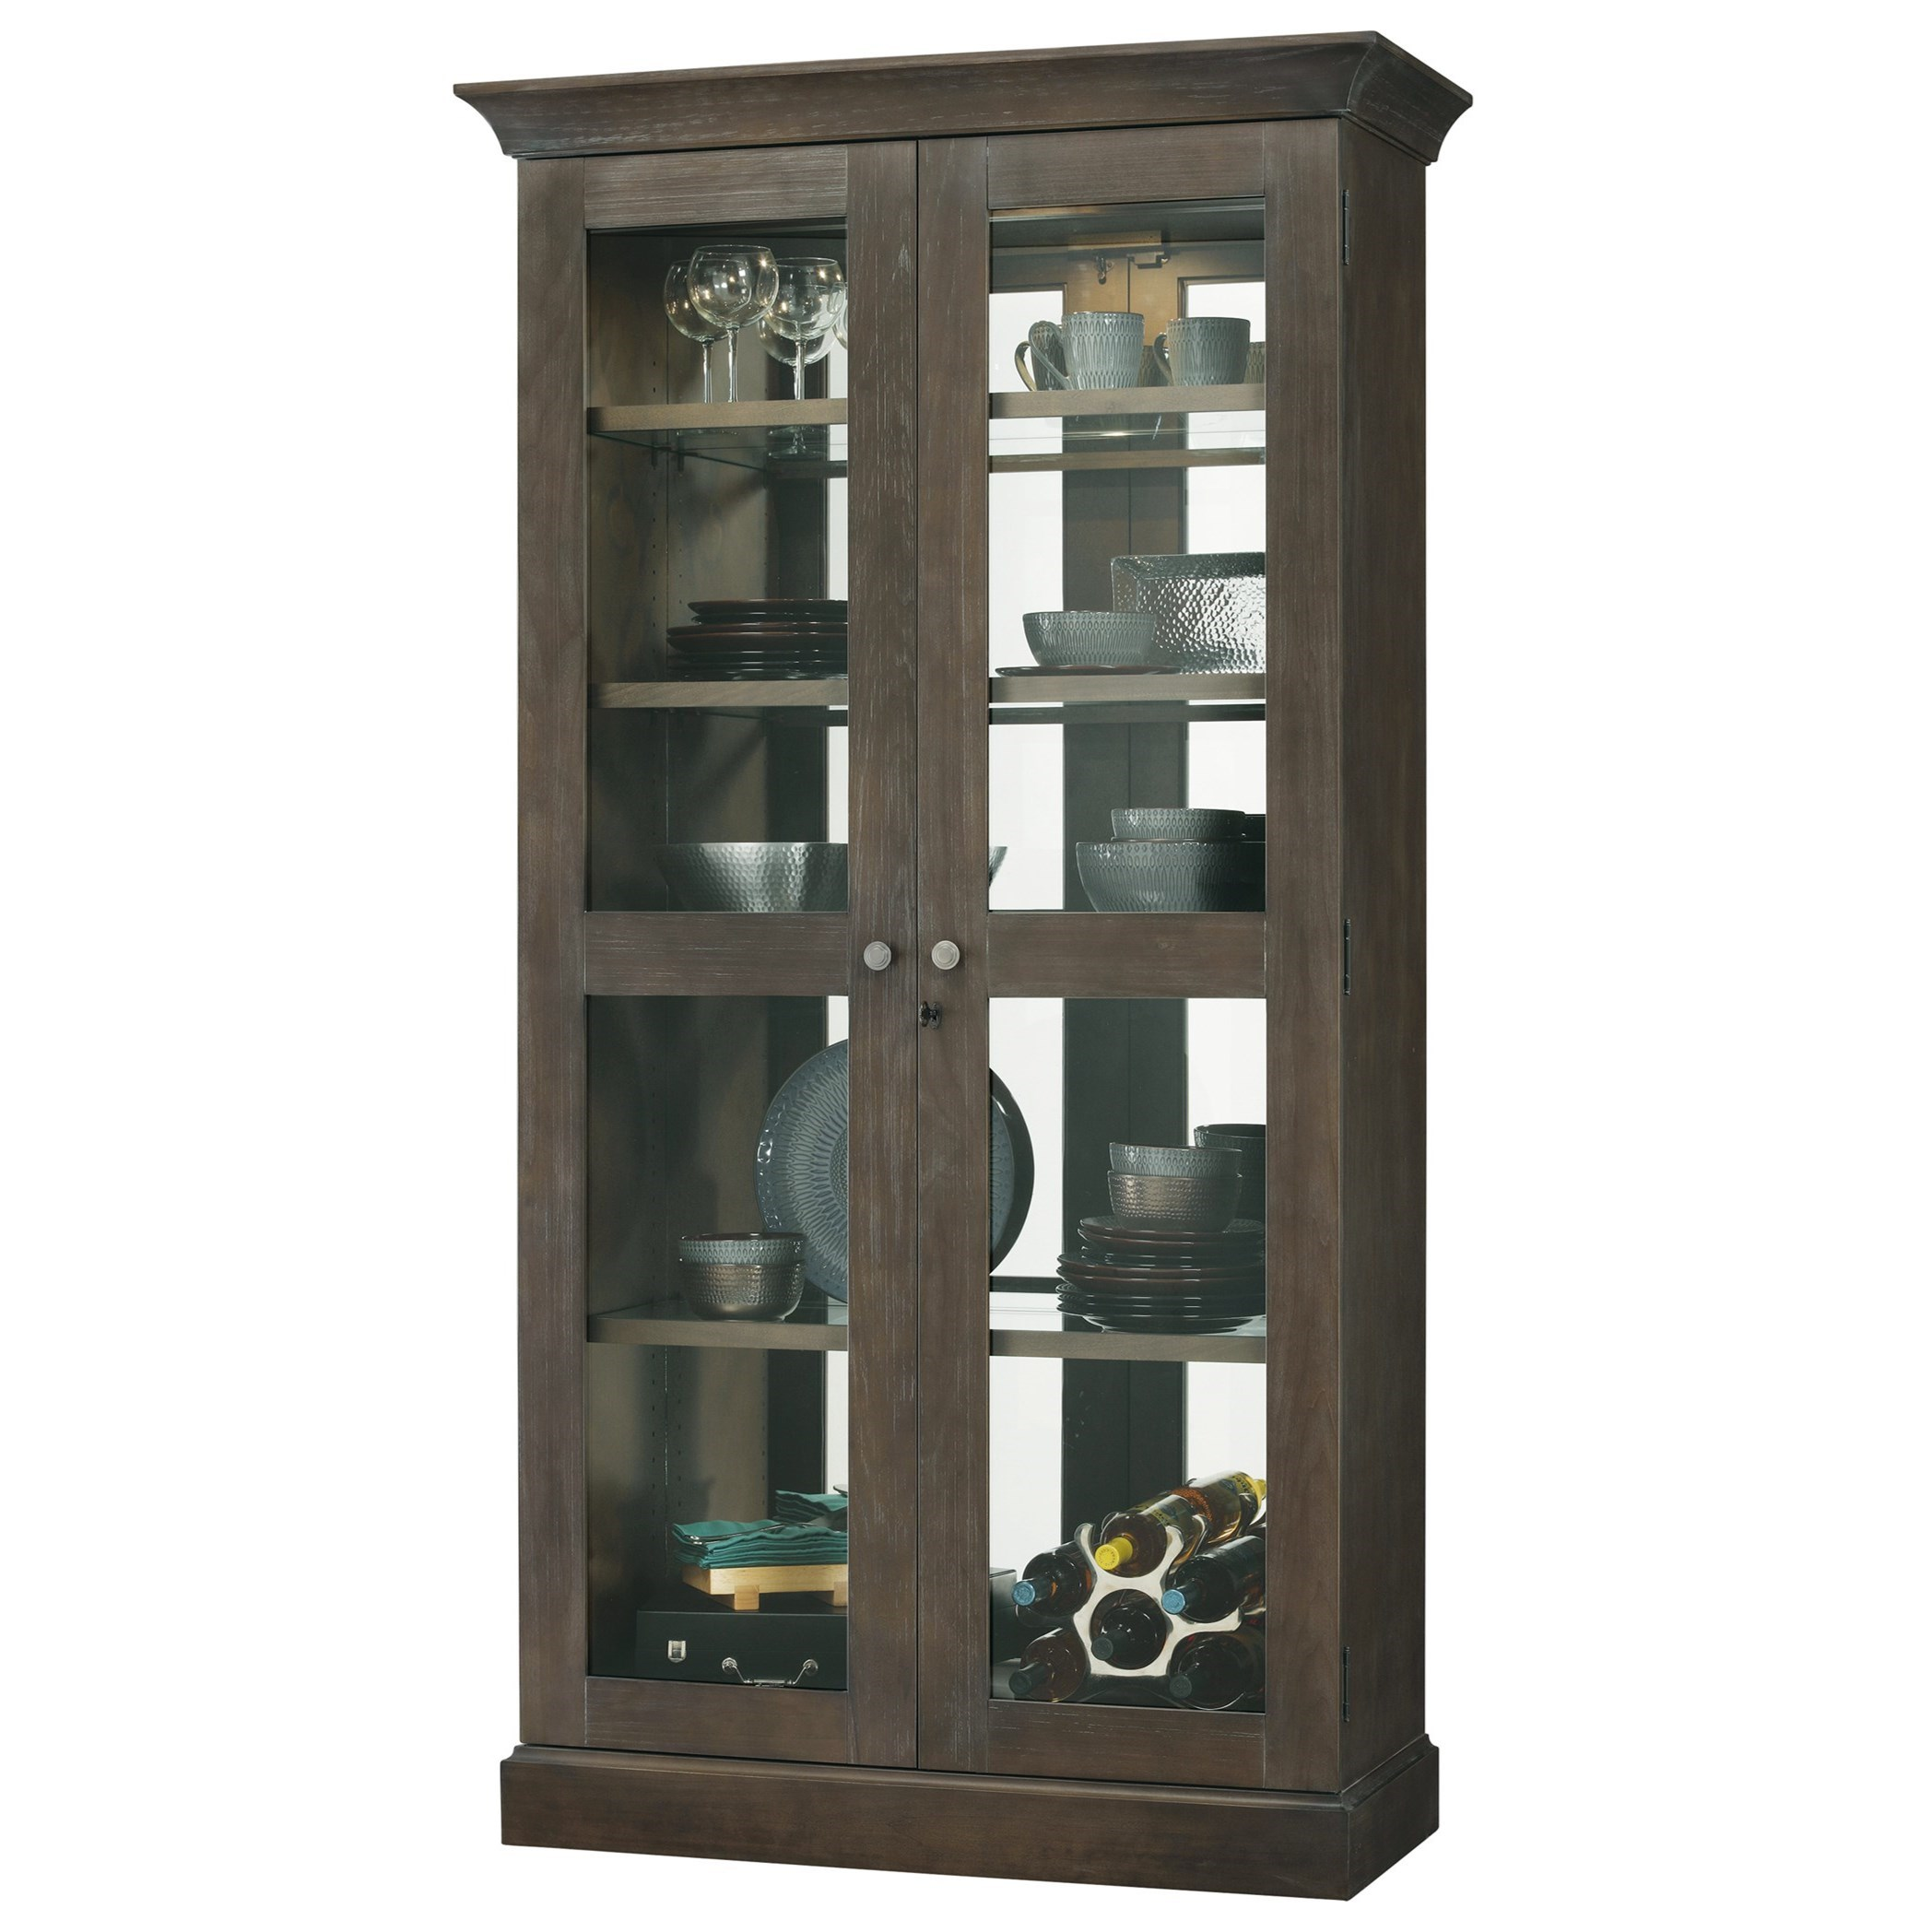 Densmoore Display Cabinet